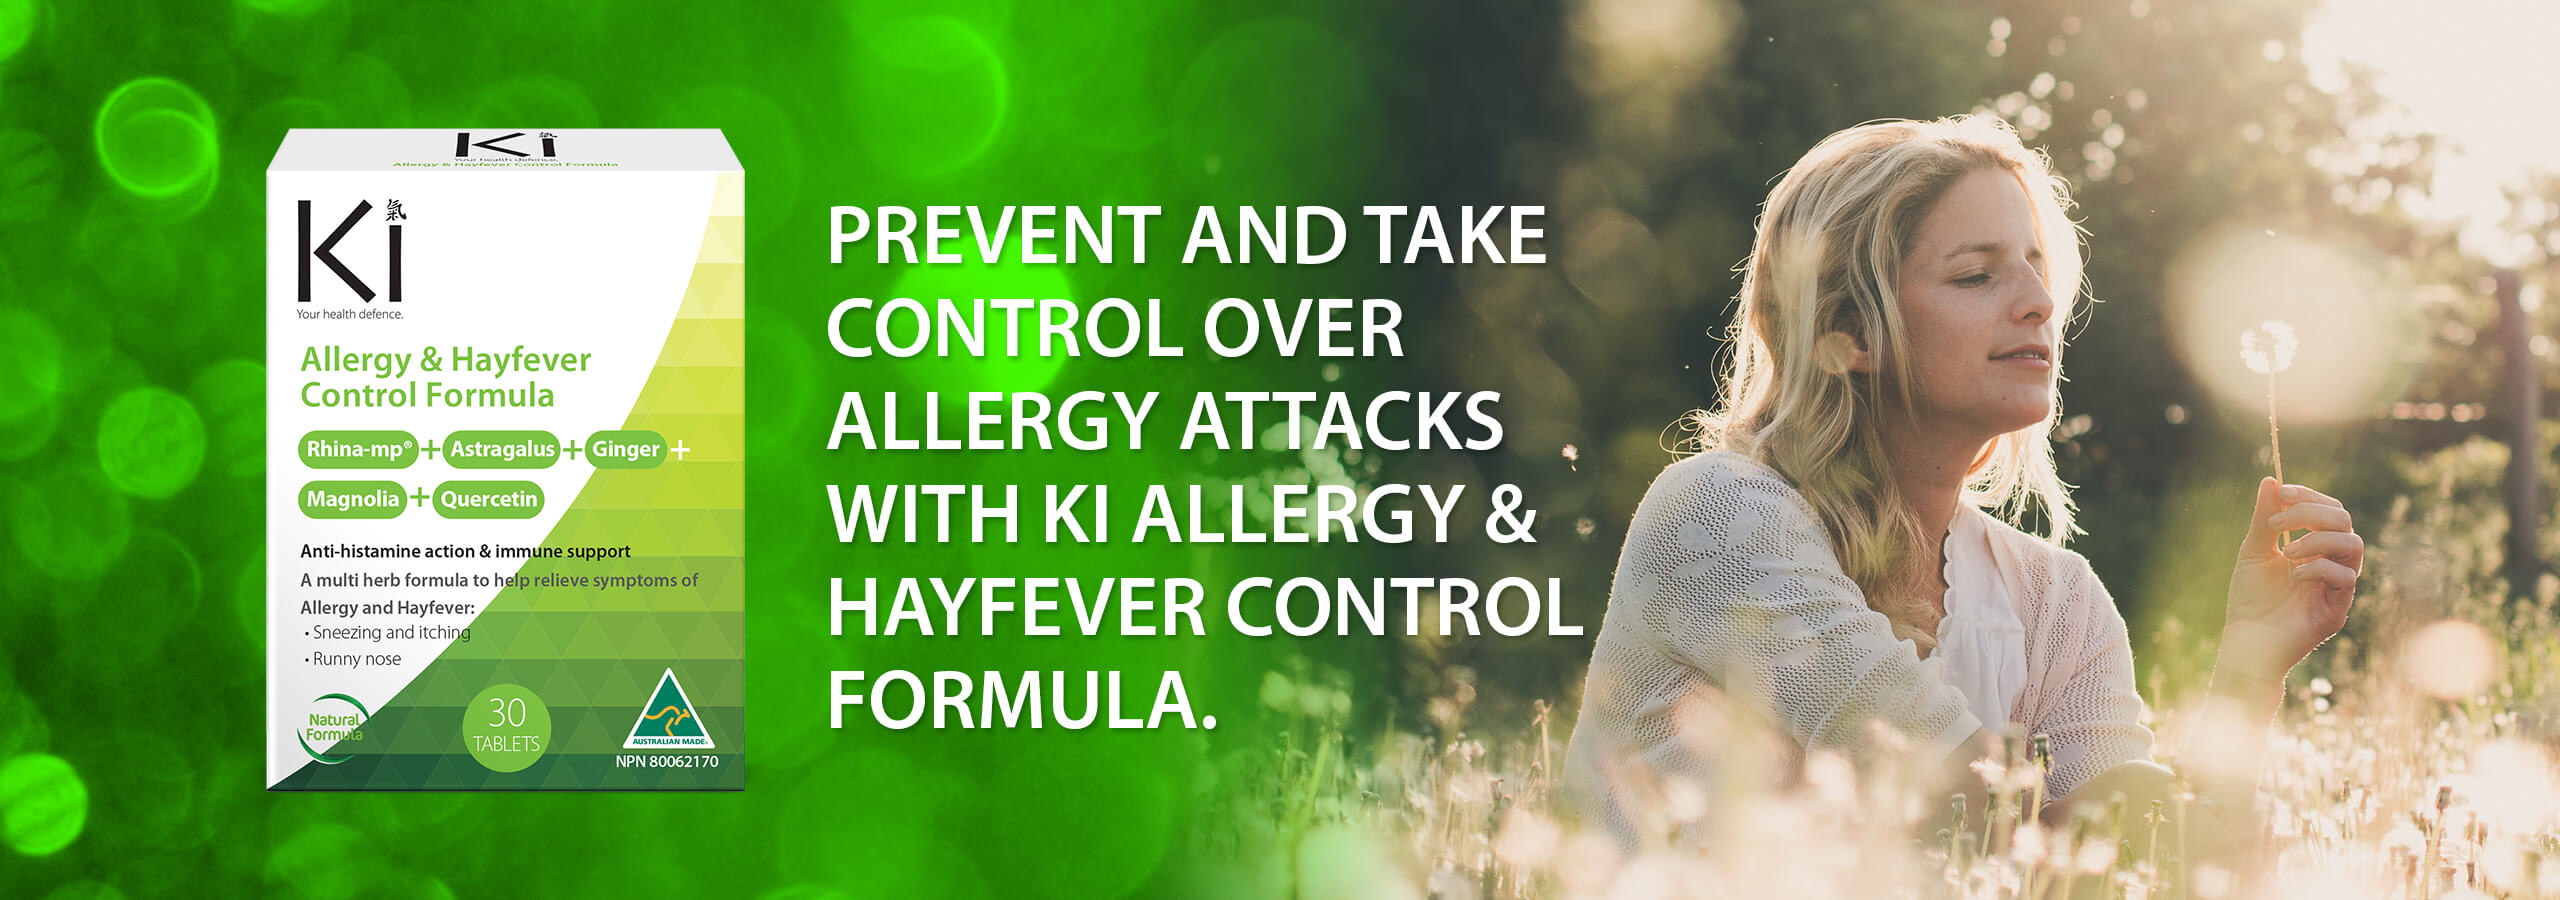 Ki Allergy | Prevent and Take Control over allergy attacks with Ki Allergy & Hayfever Control Formula